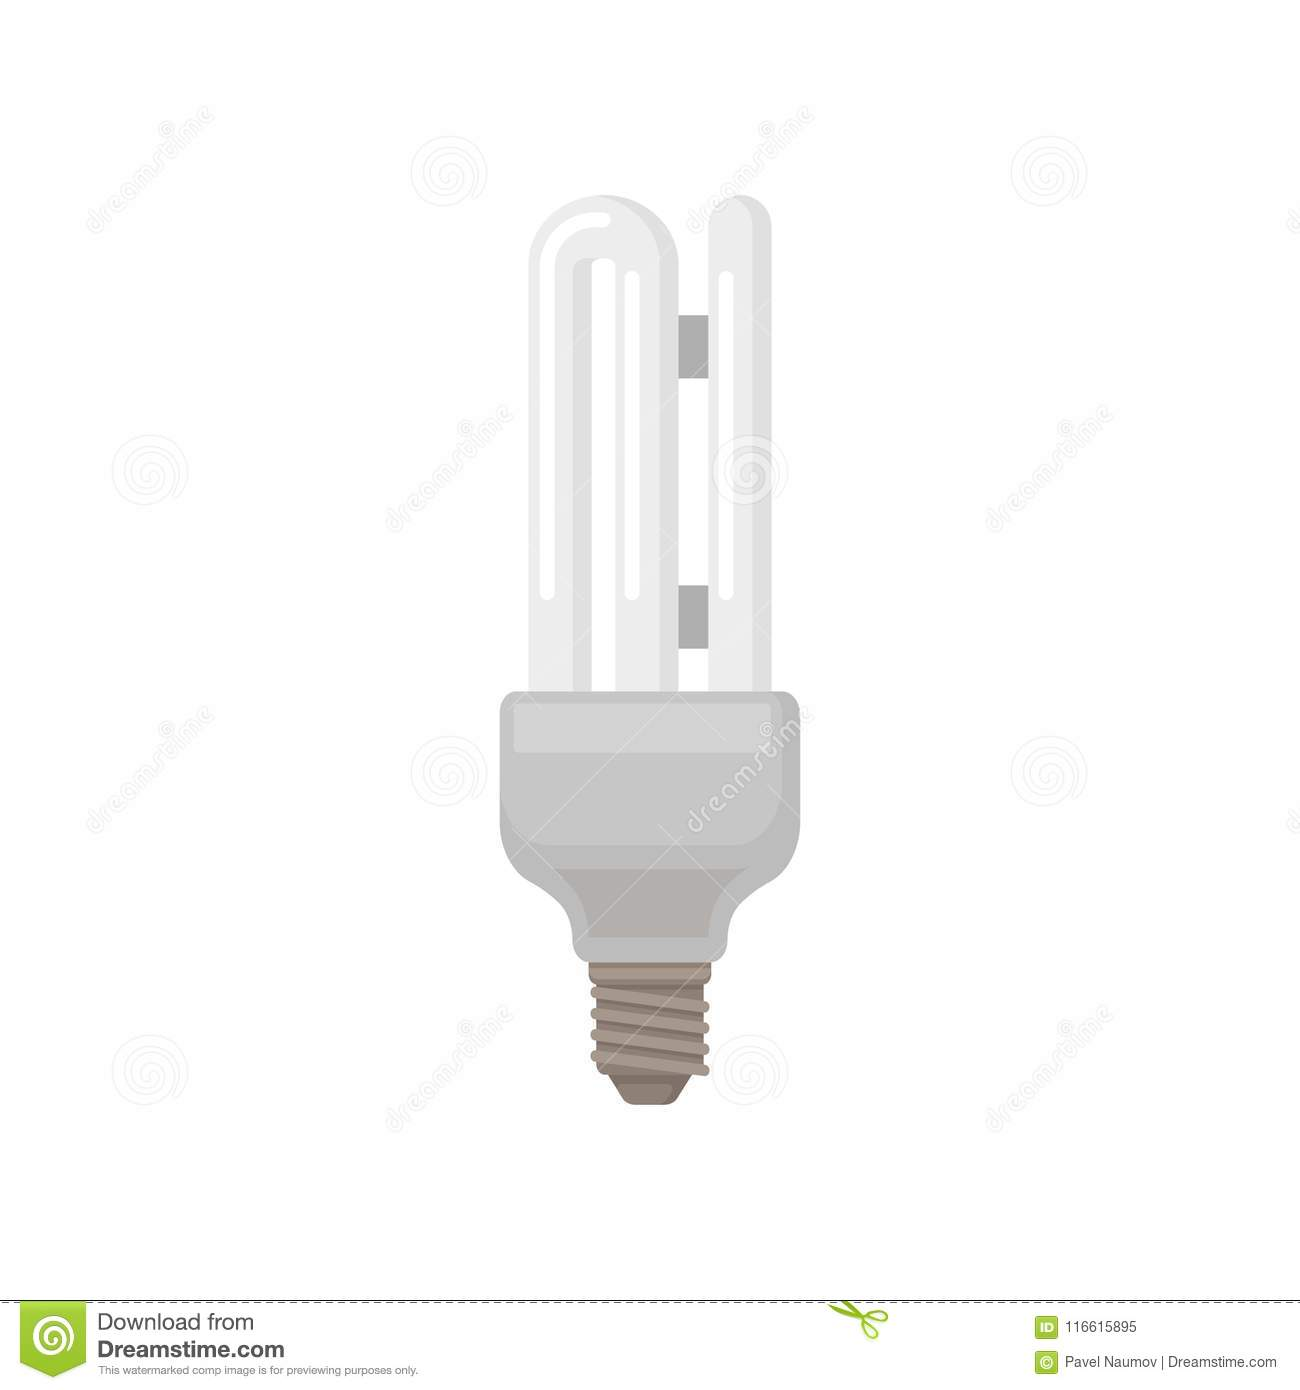 Fluorescent Light Elements: Colorful Flat Vector Icon Of Double Tube Fluorescent Lamp